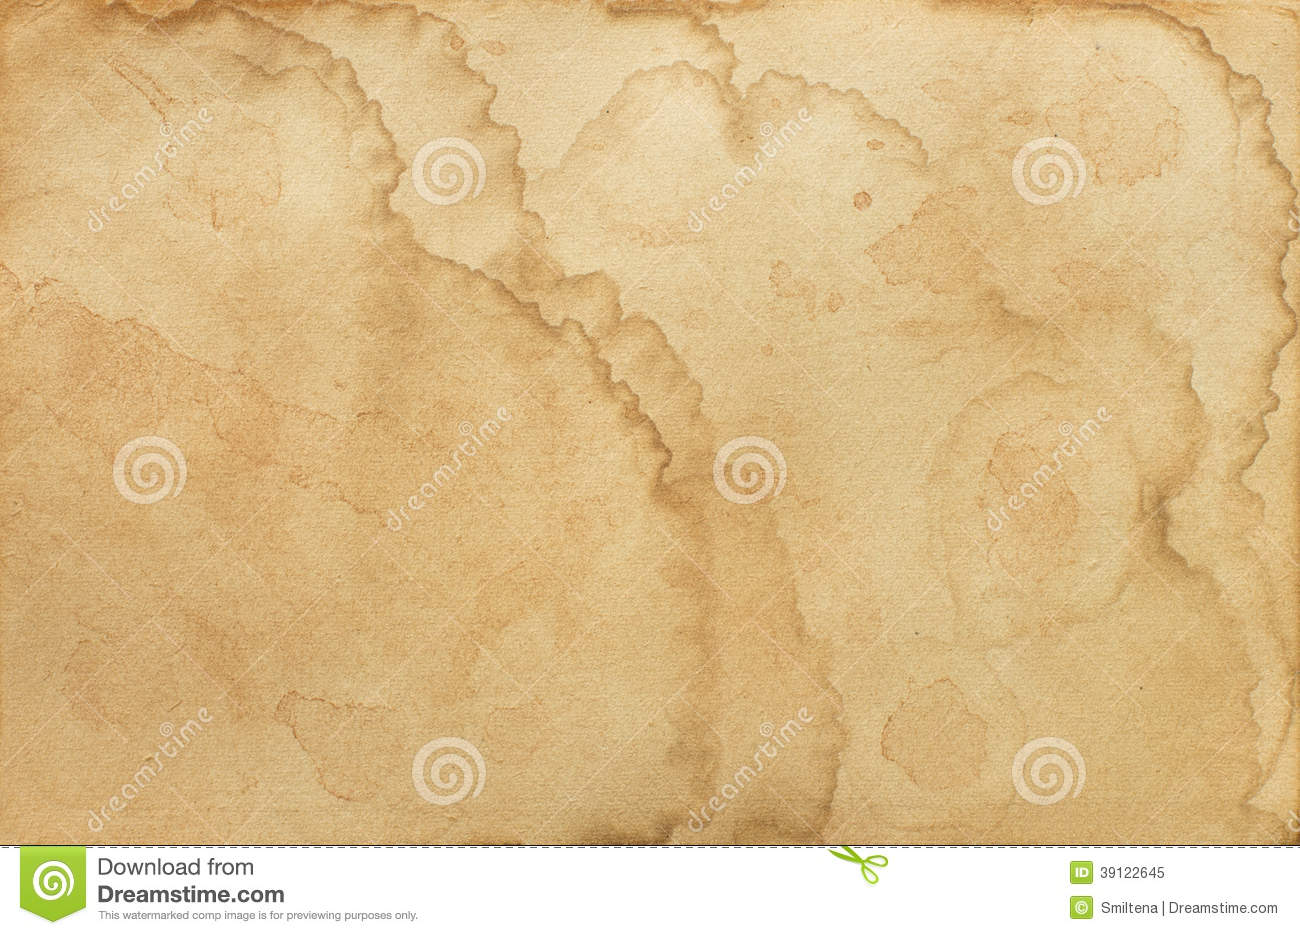 old stained paper texture stock image  image of damaged